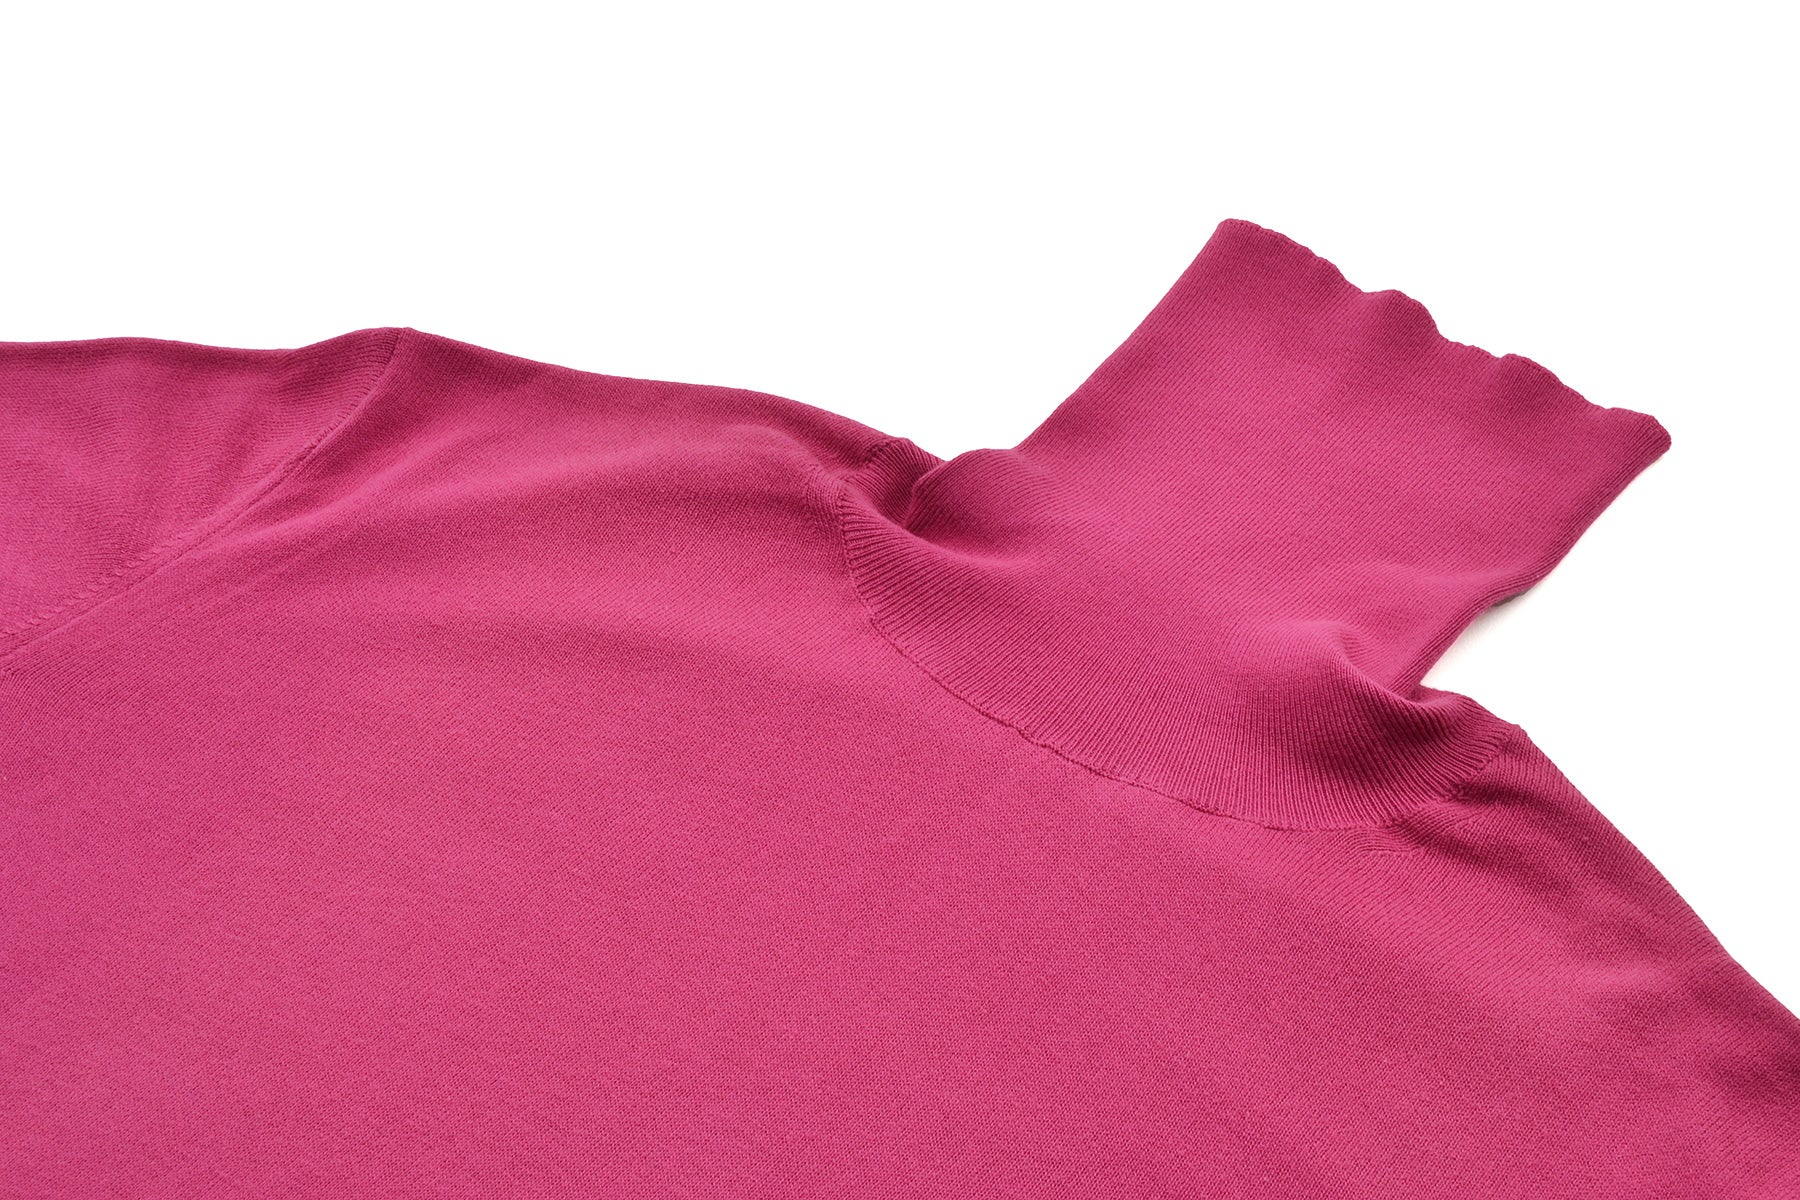 2000 S/S FUCHSIA FINEST COTTON HIGHNECK SWEATER